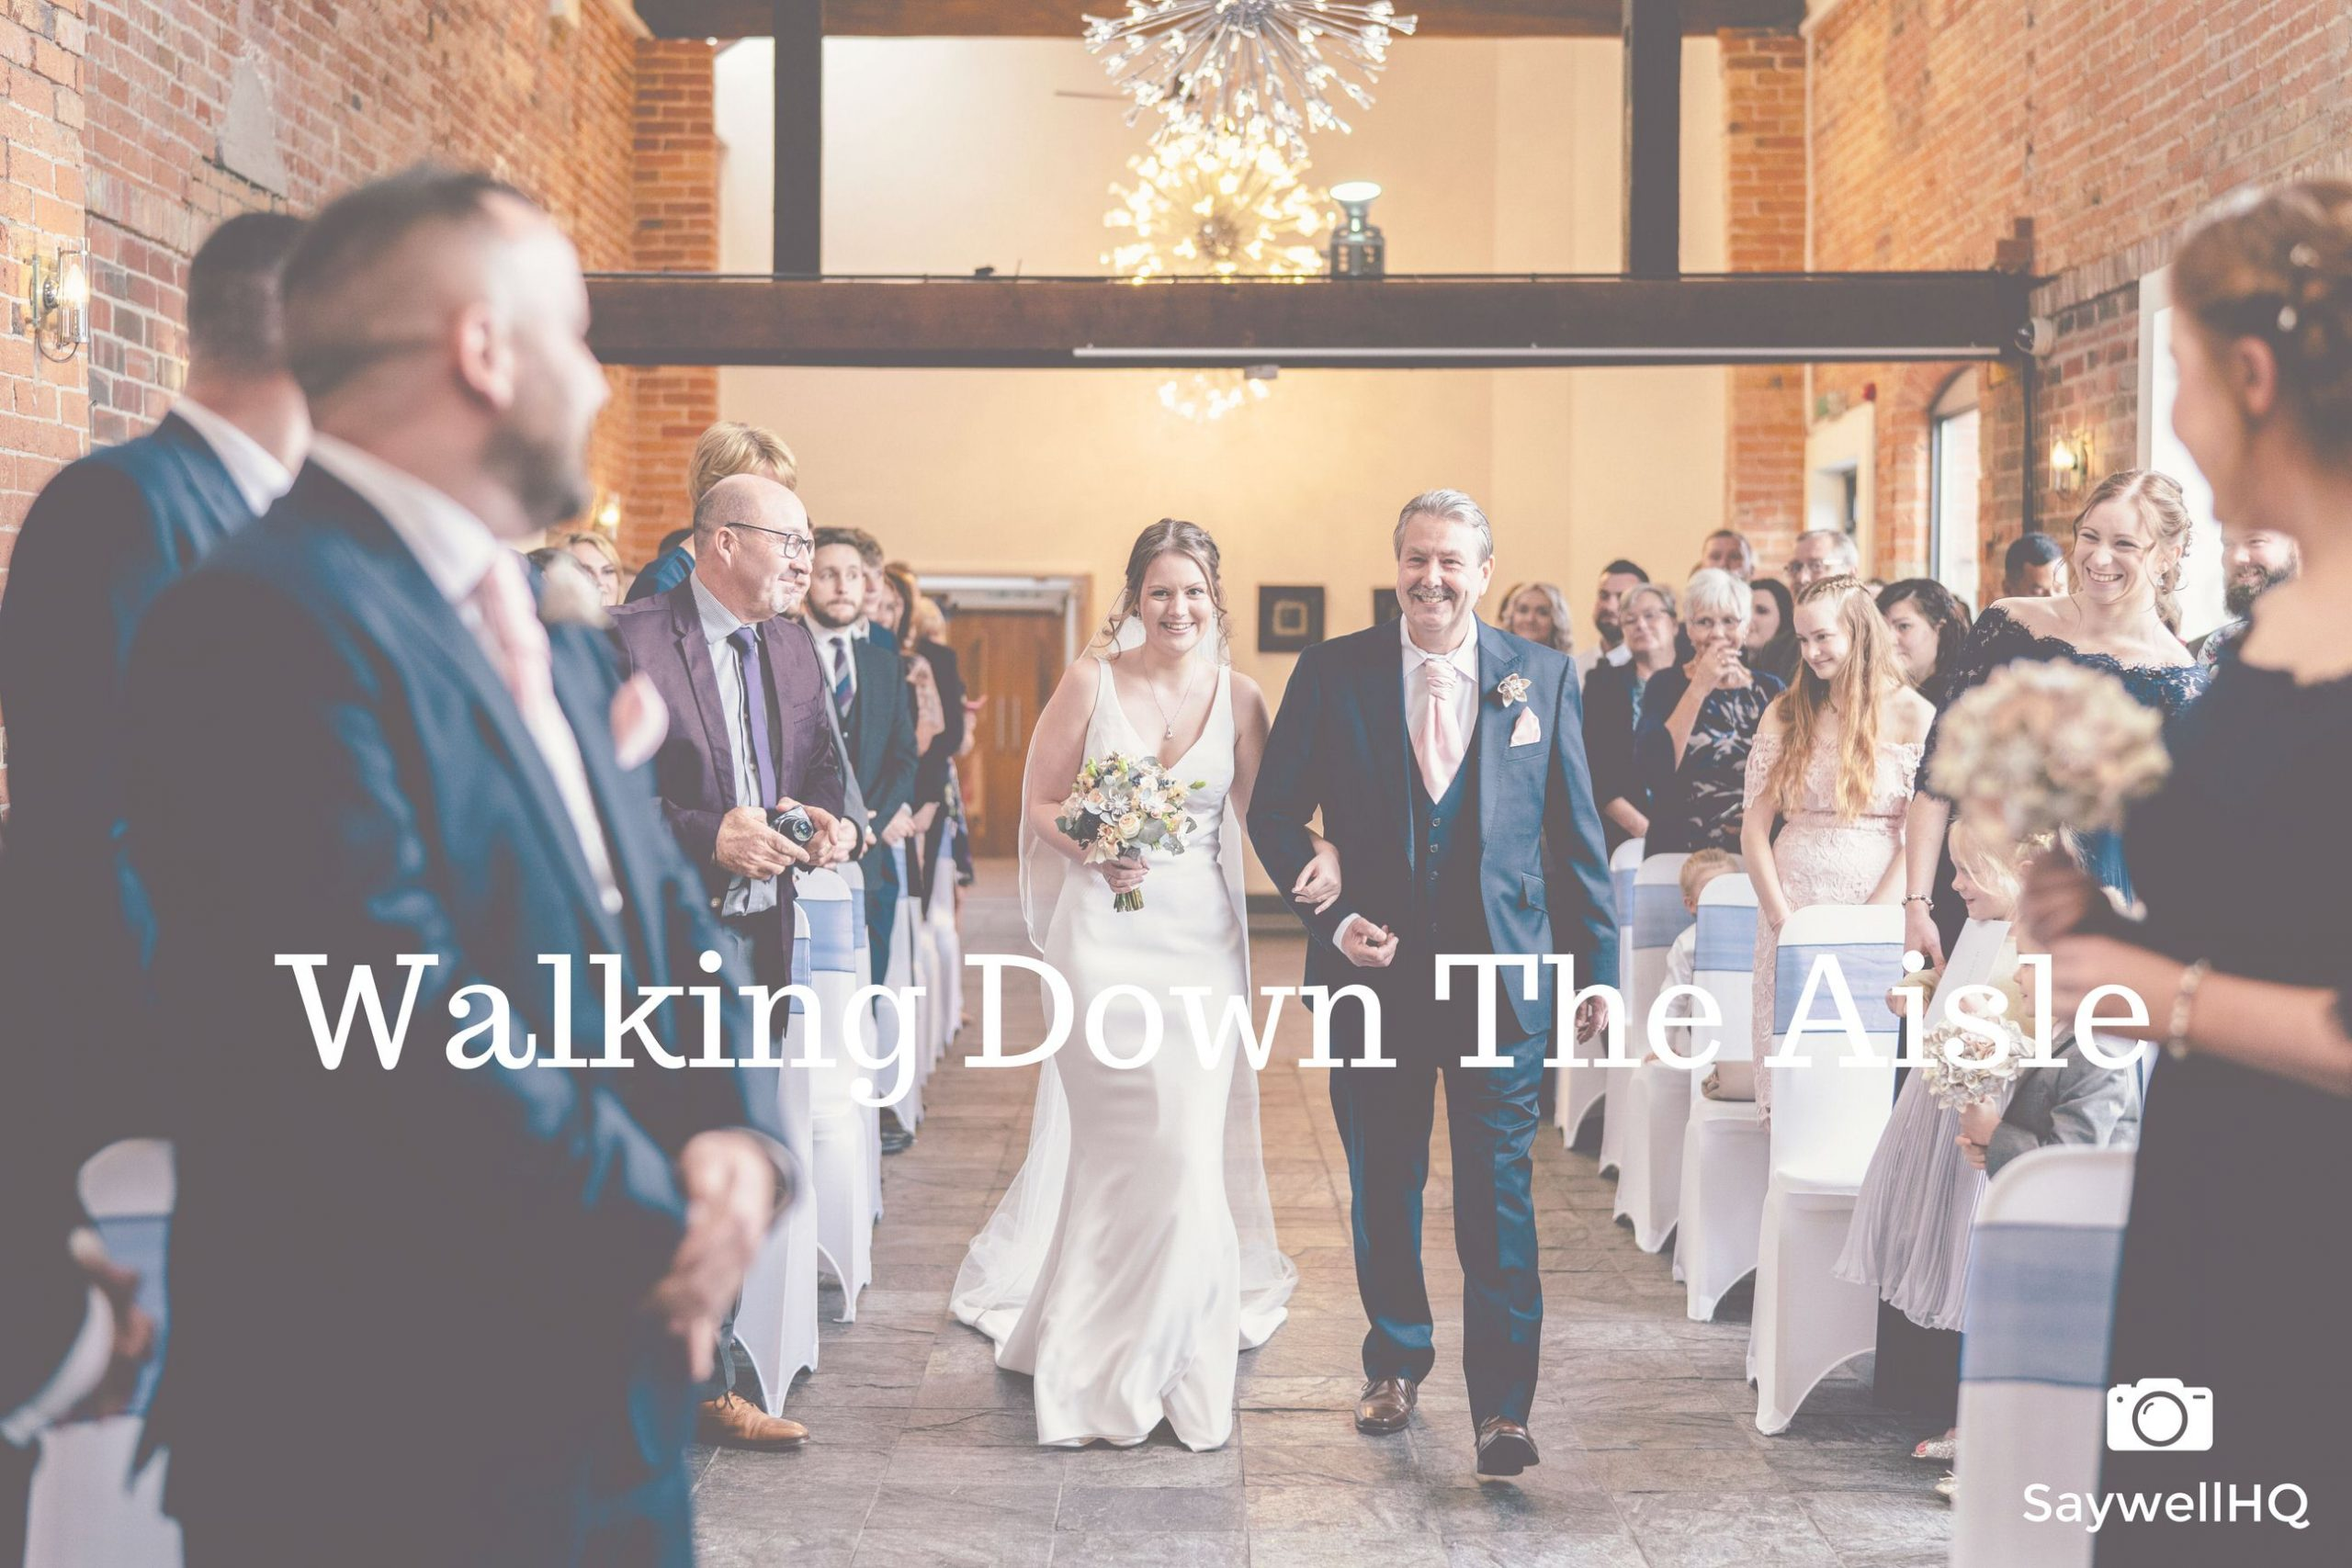 Wedding hints and tips - walking down the aisle